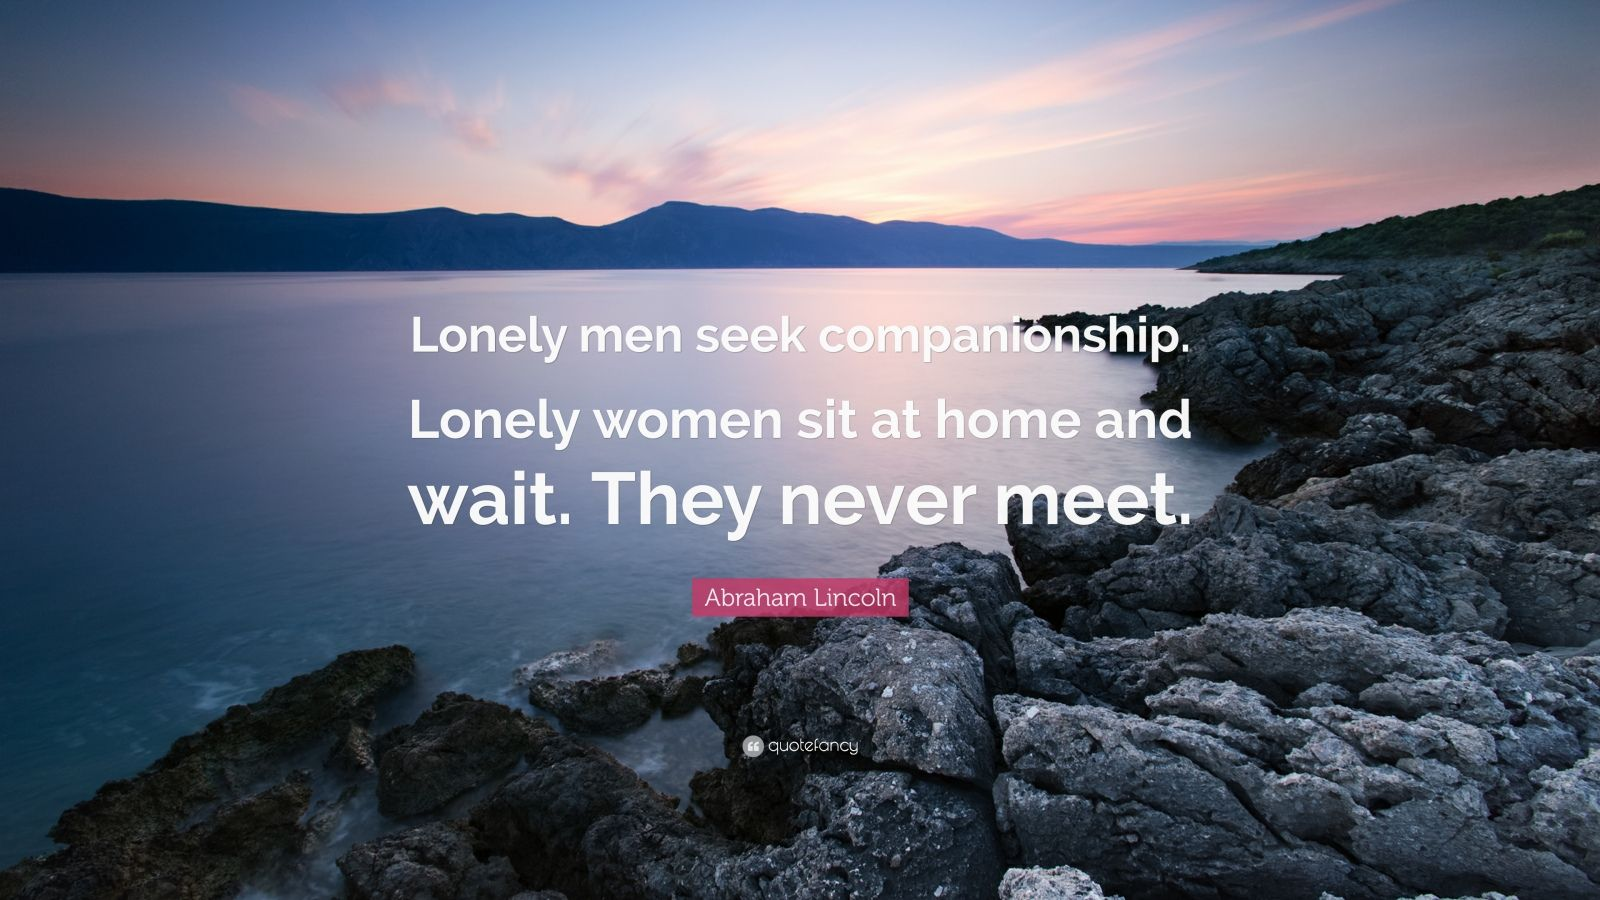 """Abraham Lincoln Quote: """"Lonely men seek companionship. Lonely women sit at home and wait. They never meet."""""""